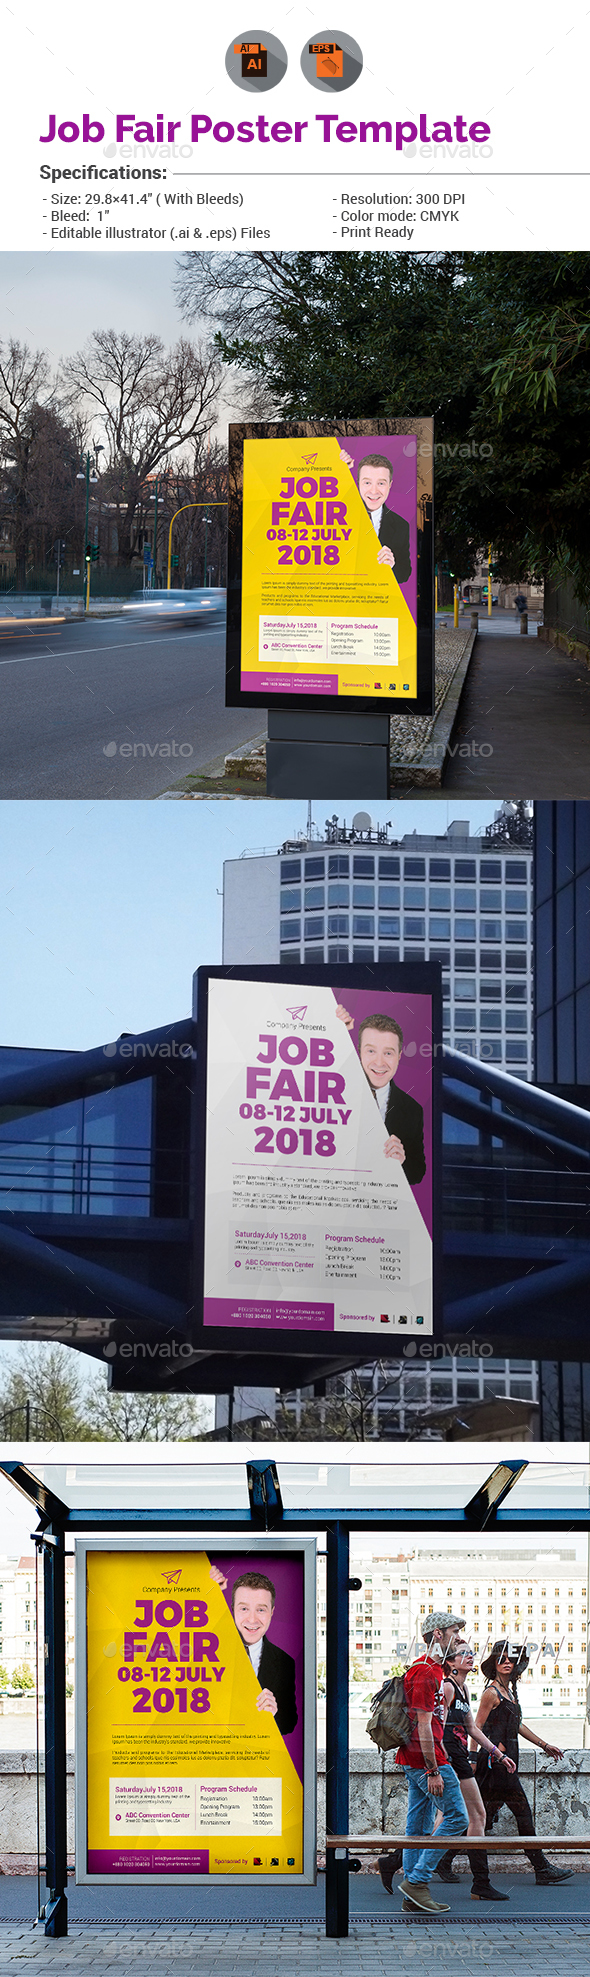 Job fair poster templates for drivers free